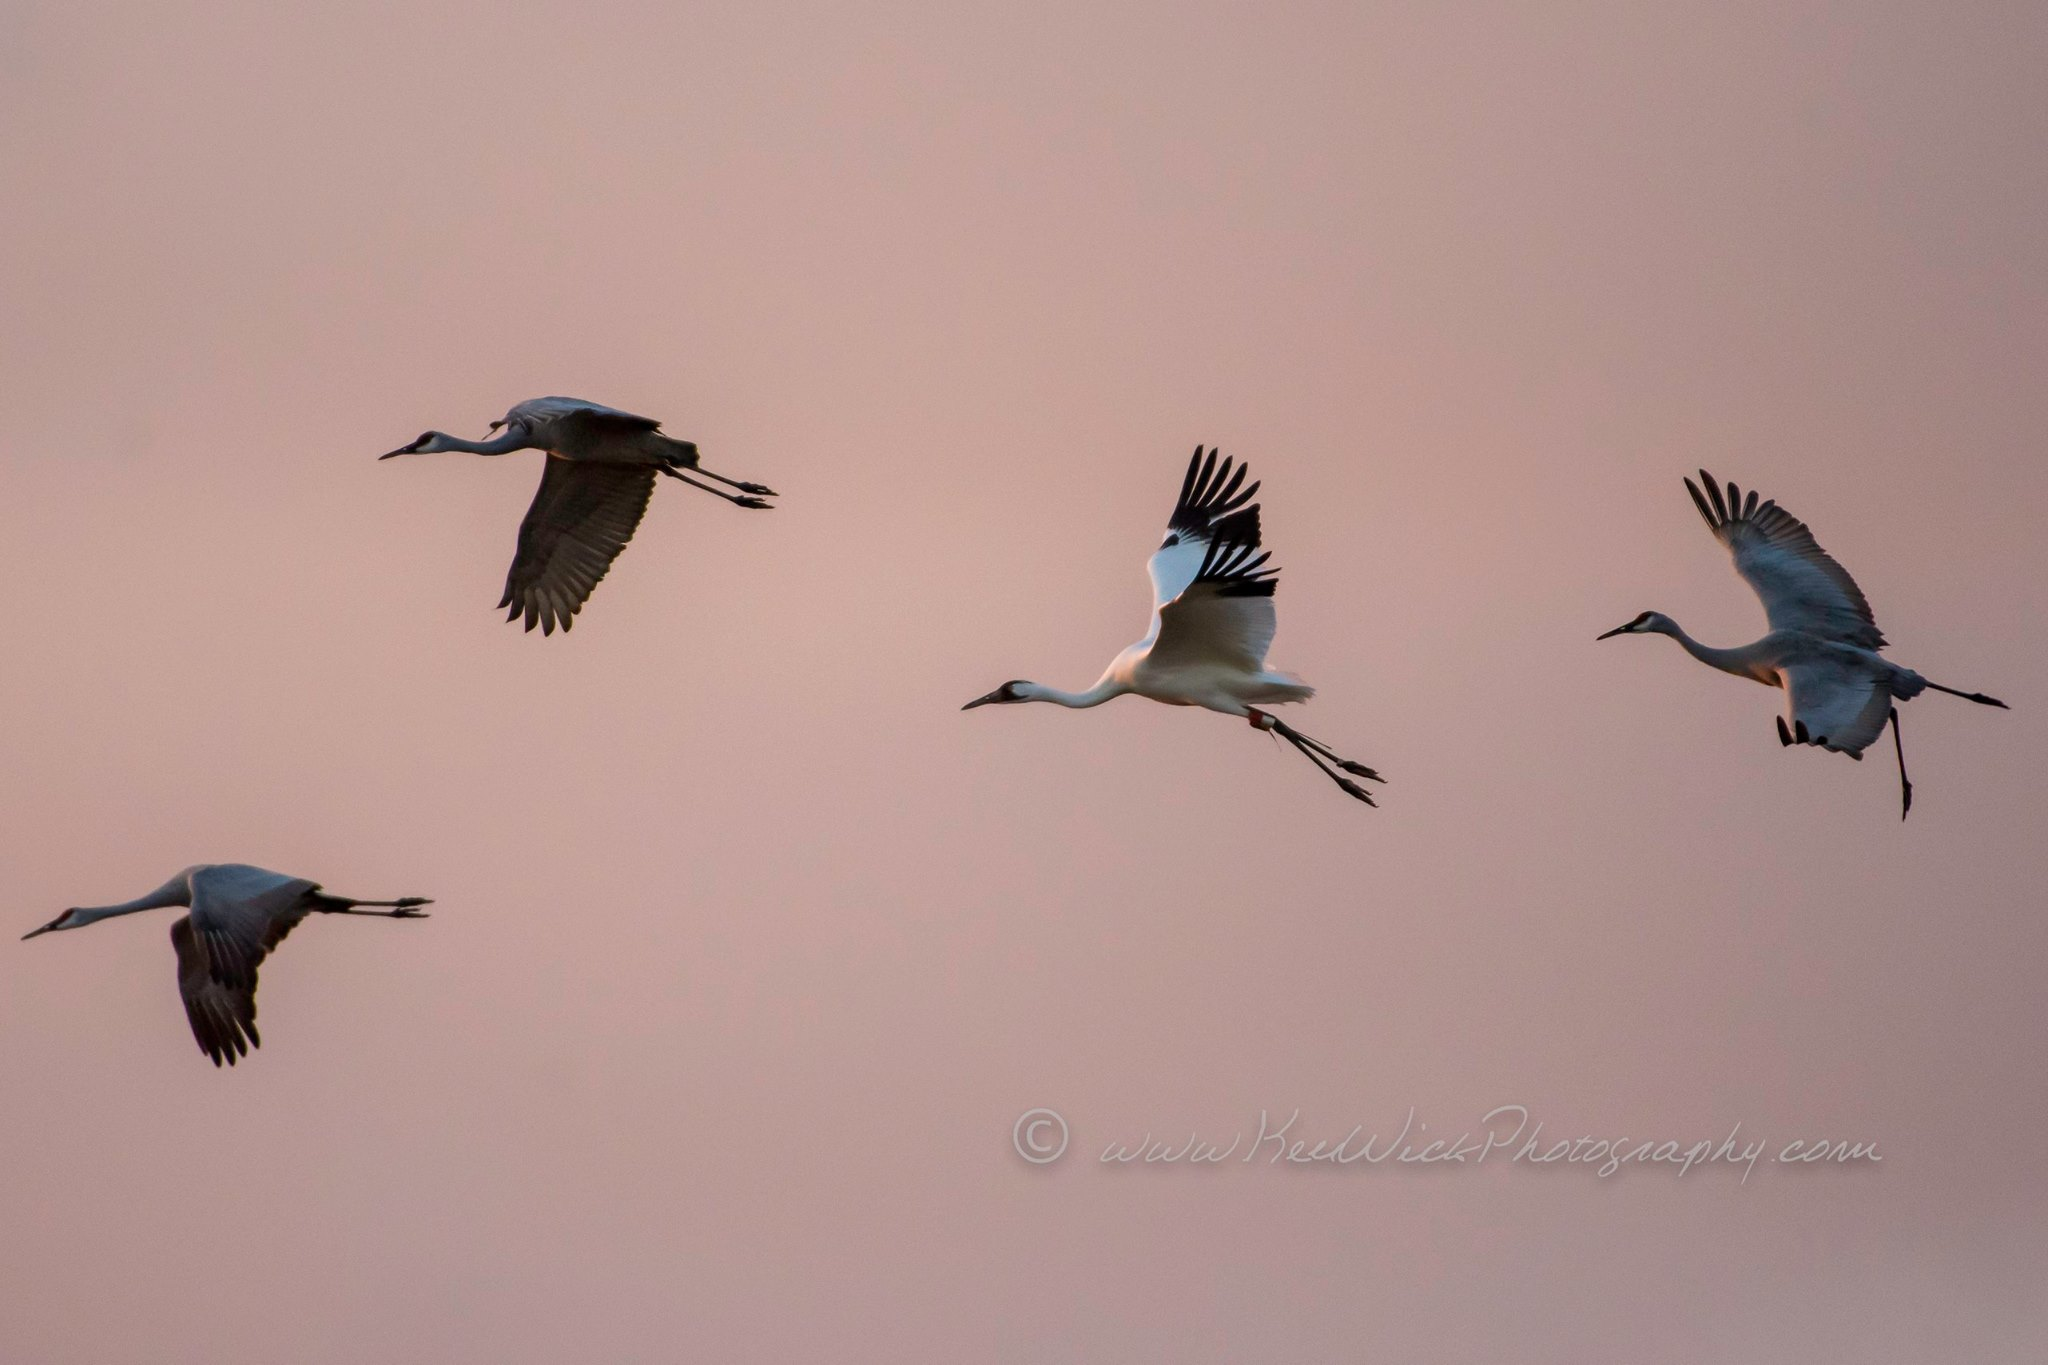 A Whooping Crane, accompanied by Sandhill Cranes, above McHenry County, Illinois, during autumn migration, November 15, 2017. Photo by Ken Wick.